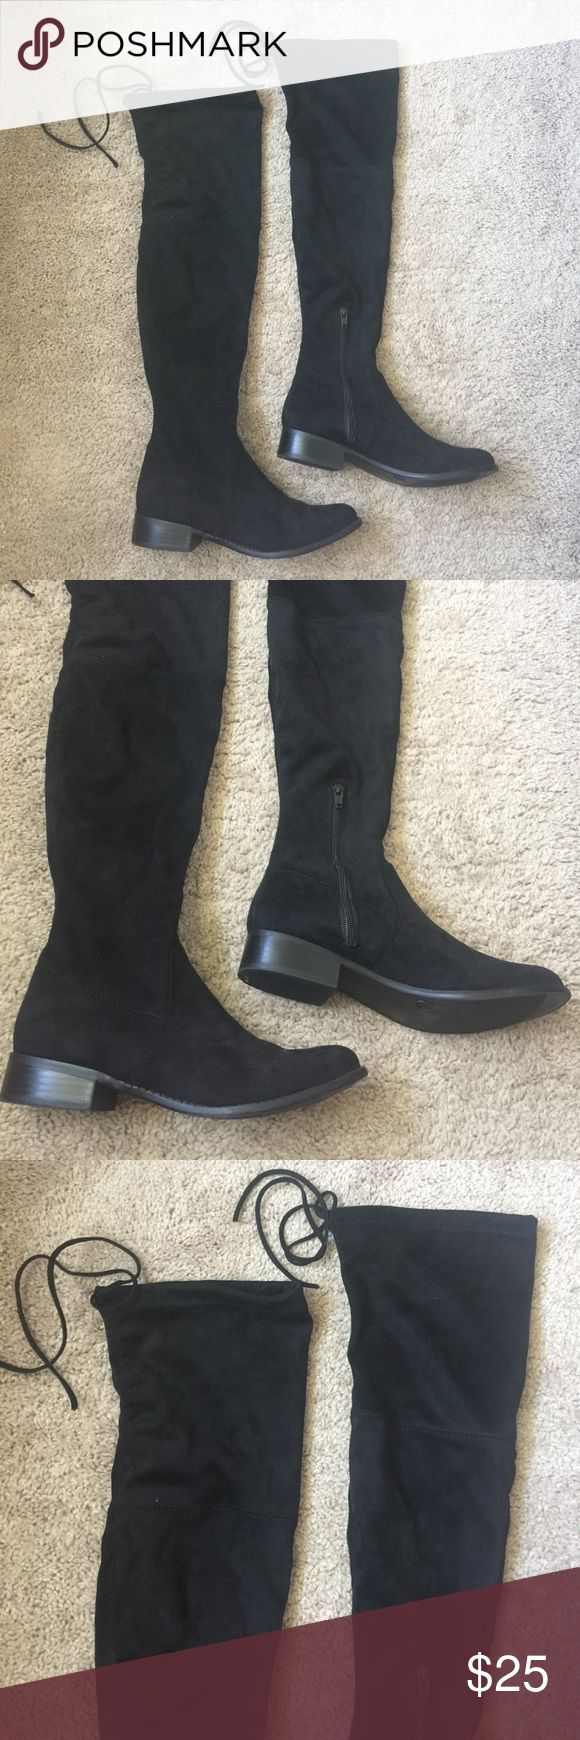 Black over knee boots Black Shoes Over the Knee Boots